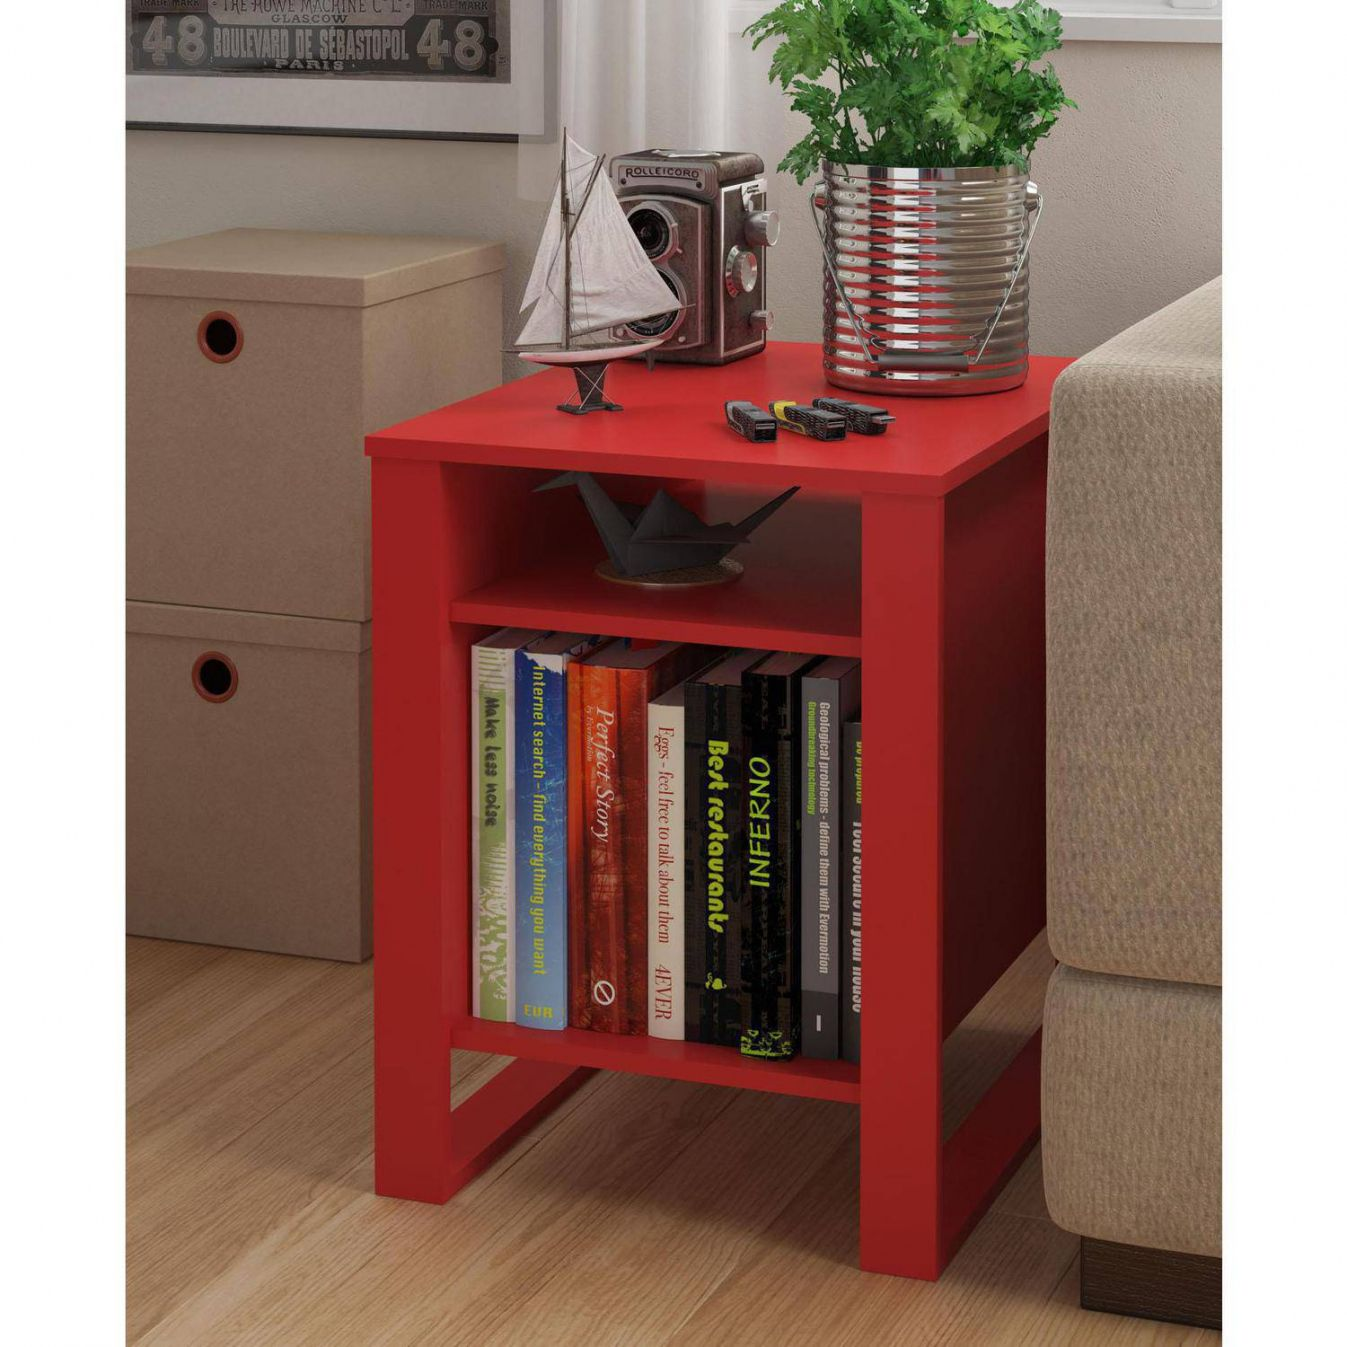 red end tables vintage modern furniture check more accent table nikkitsfun metal patio sets mini lanterns yellow ornaments for living room hall chests and cabinets round folding